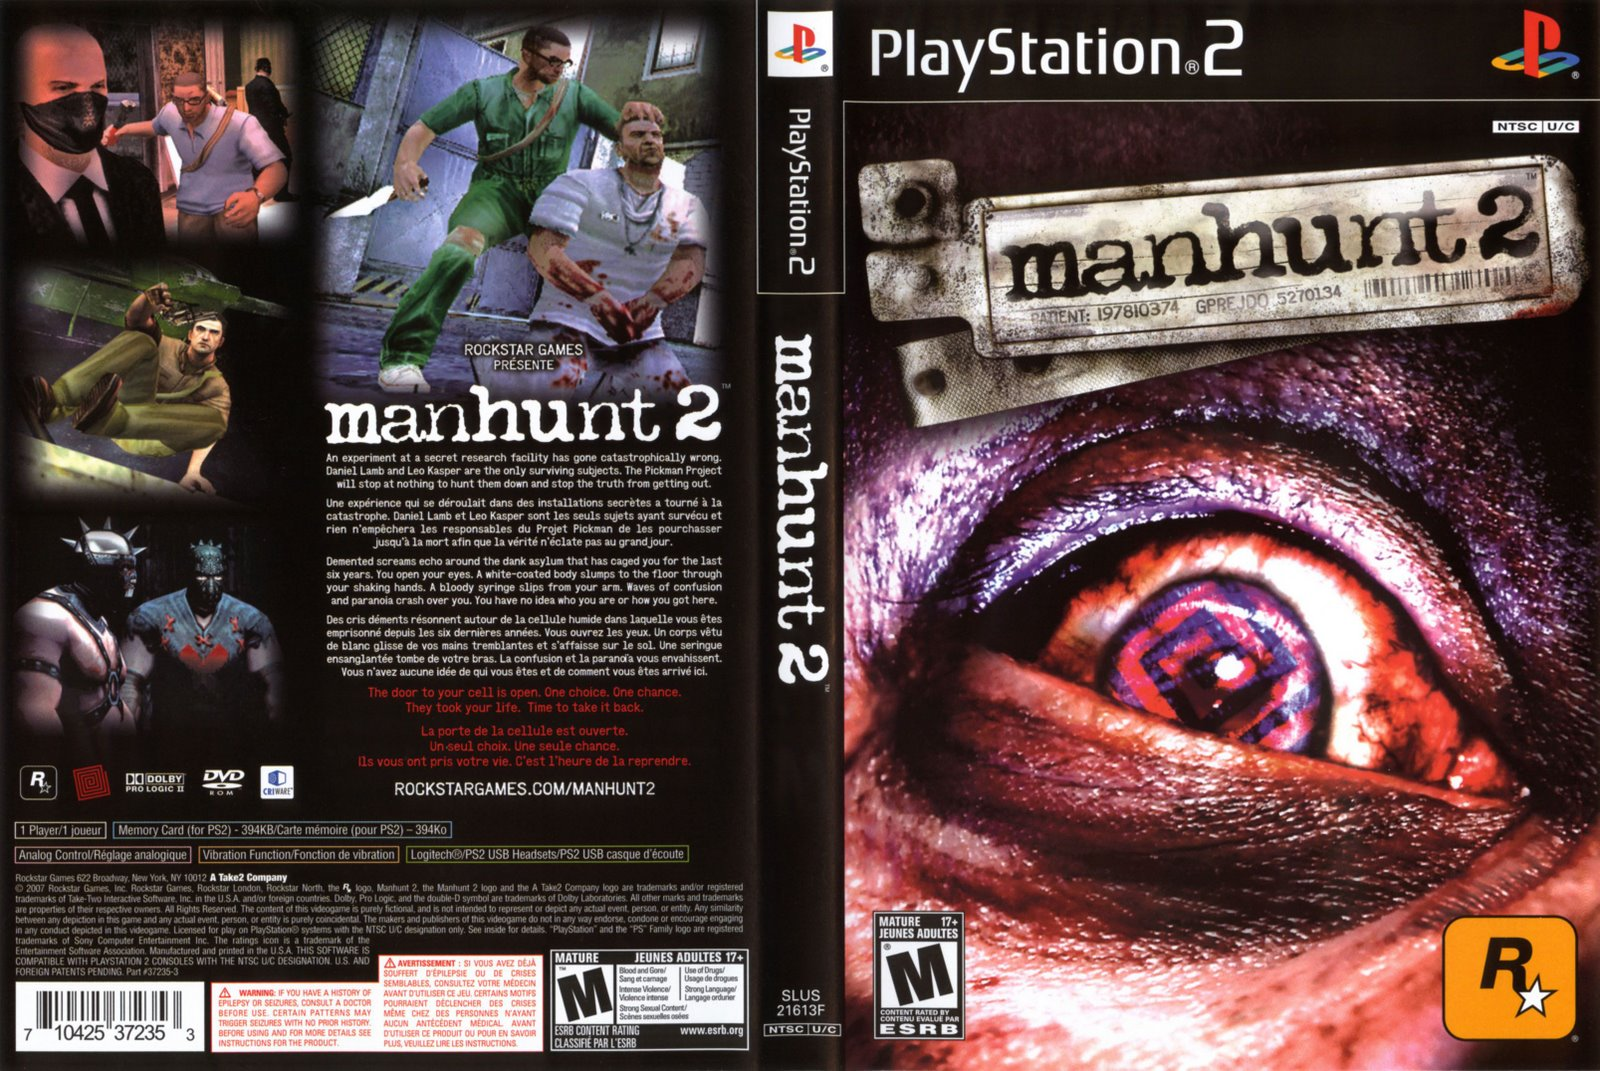 Manhunt 2 (USA) ROM / ISO Download for PlayStation 2 (PS2) - Rom Hustler